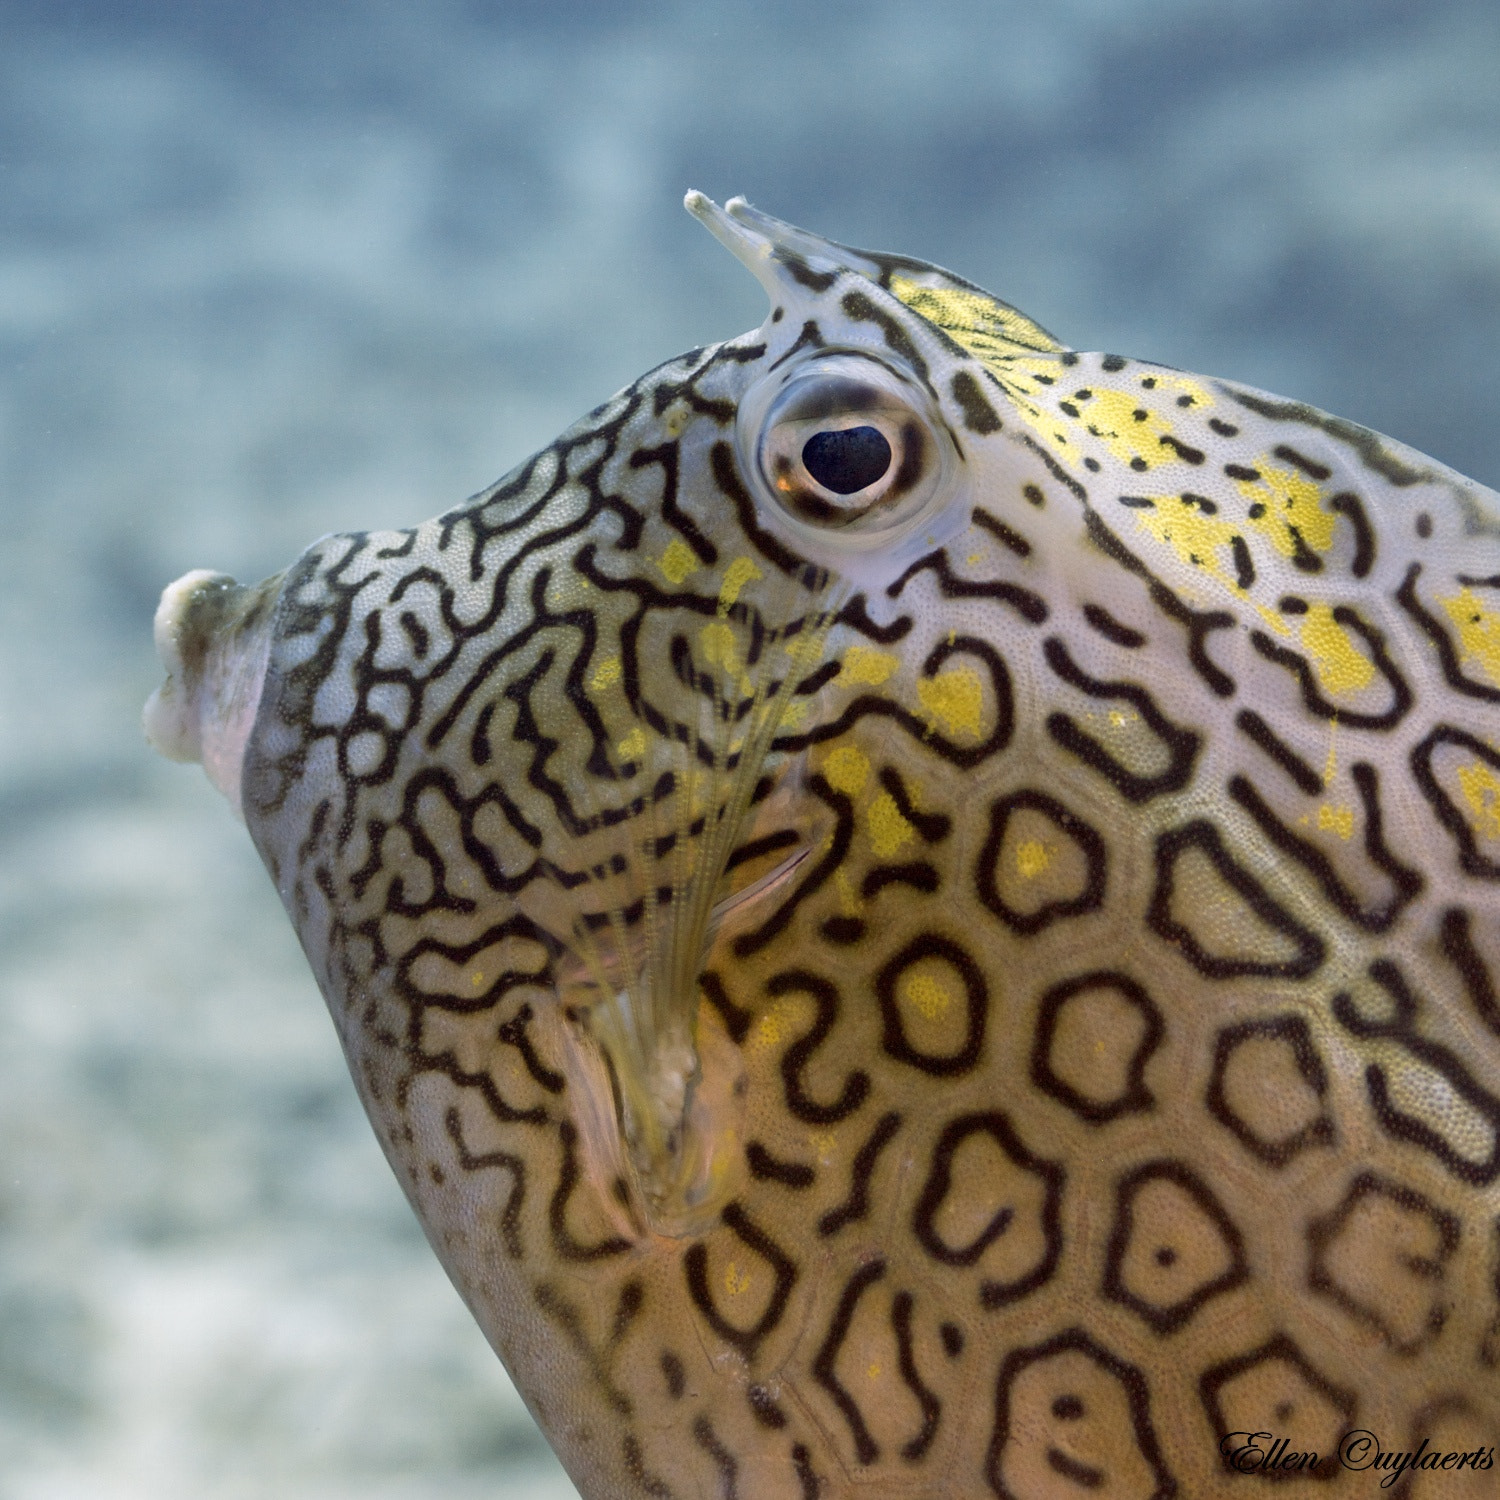 Photograph A Sunday kiss from a Cowfish;-) by Ellen Cuylaerts on 500px